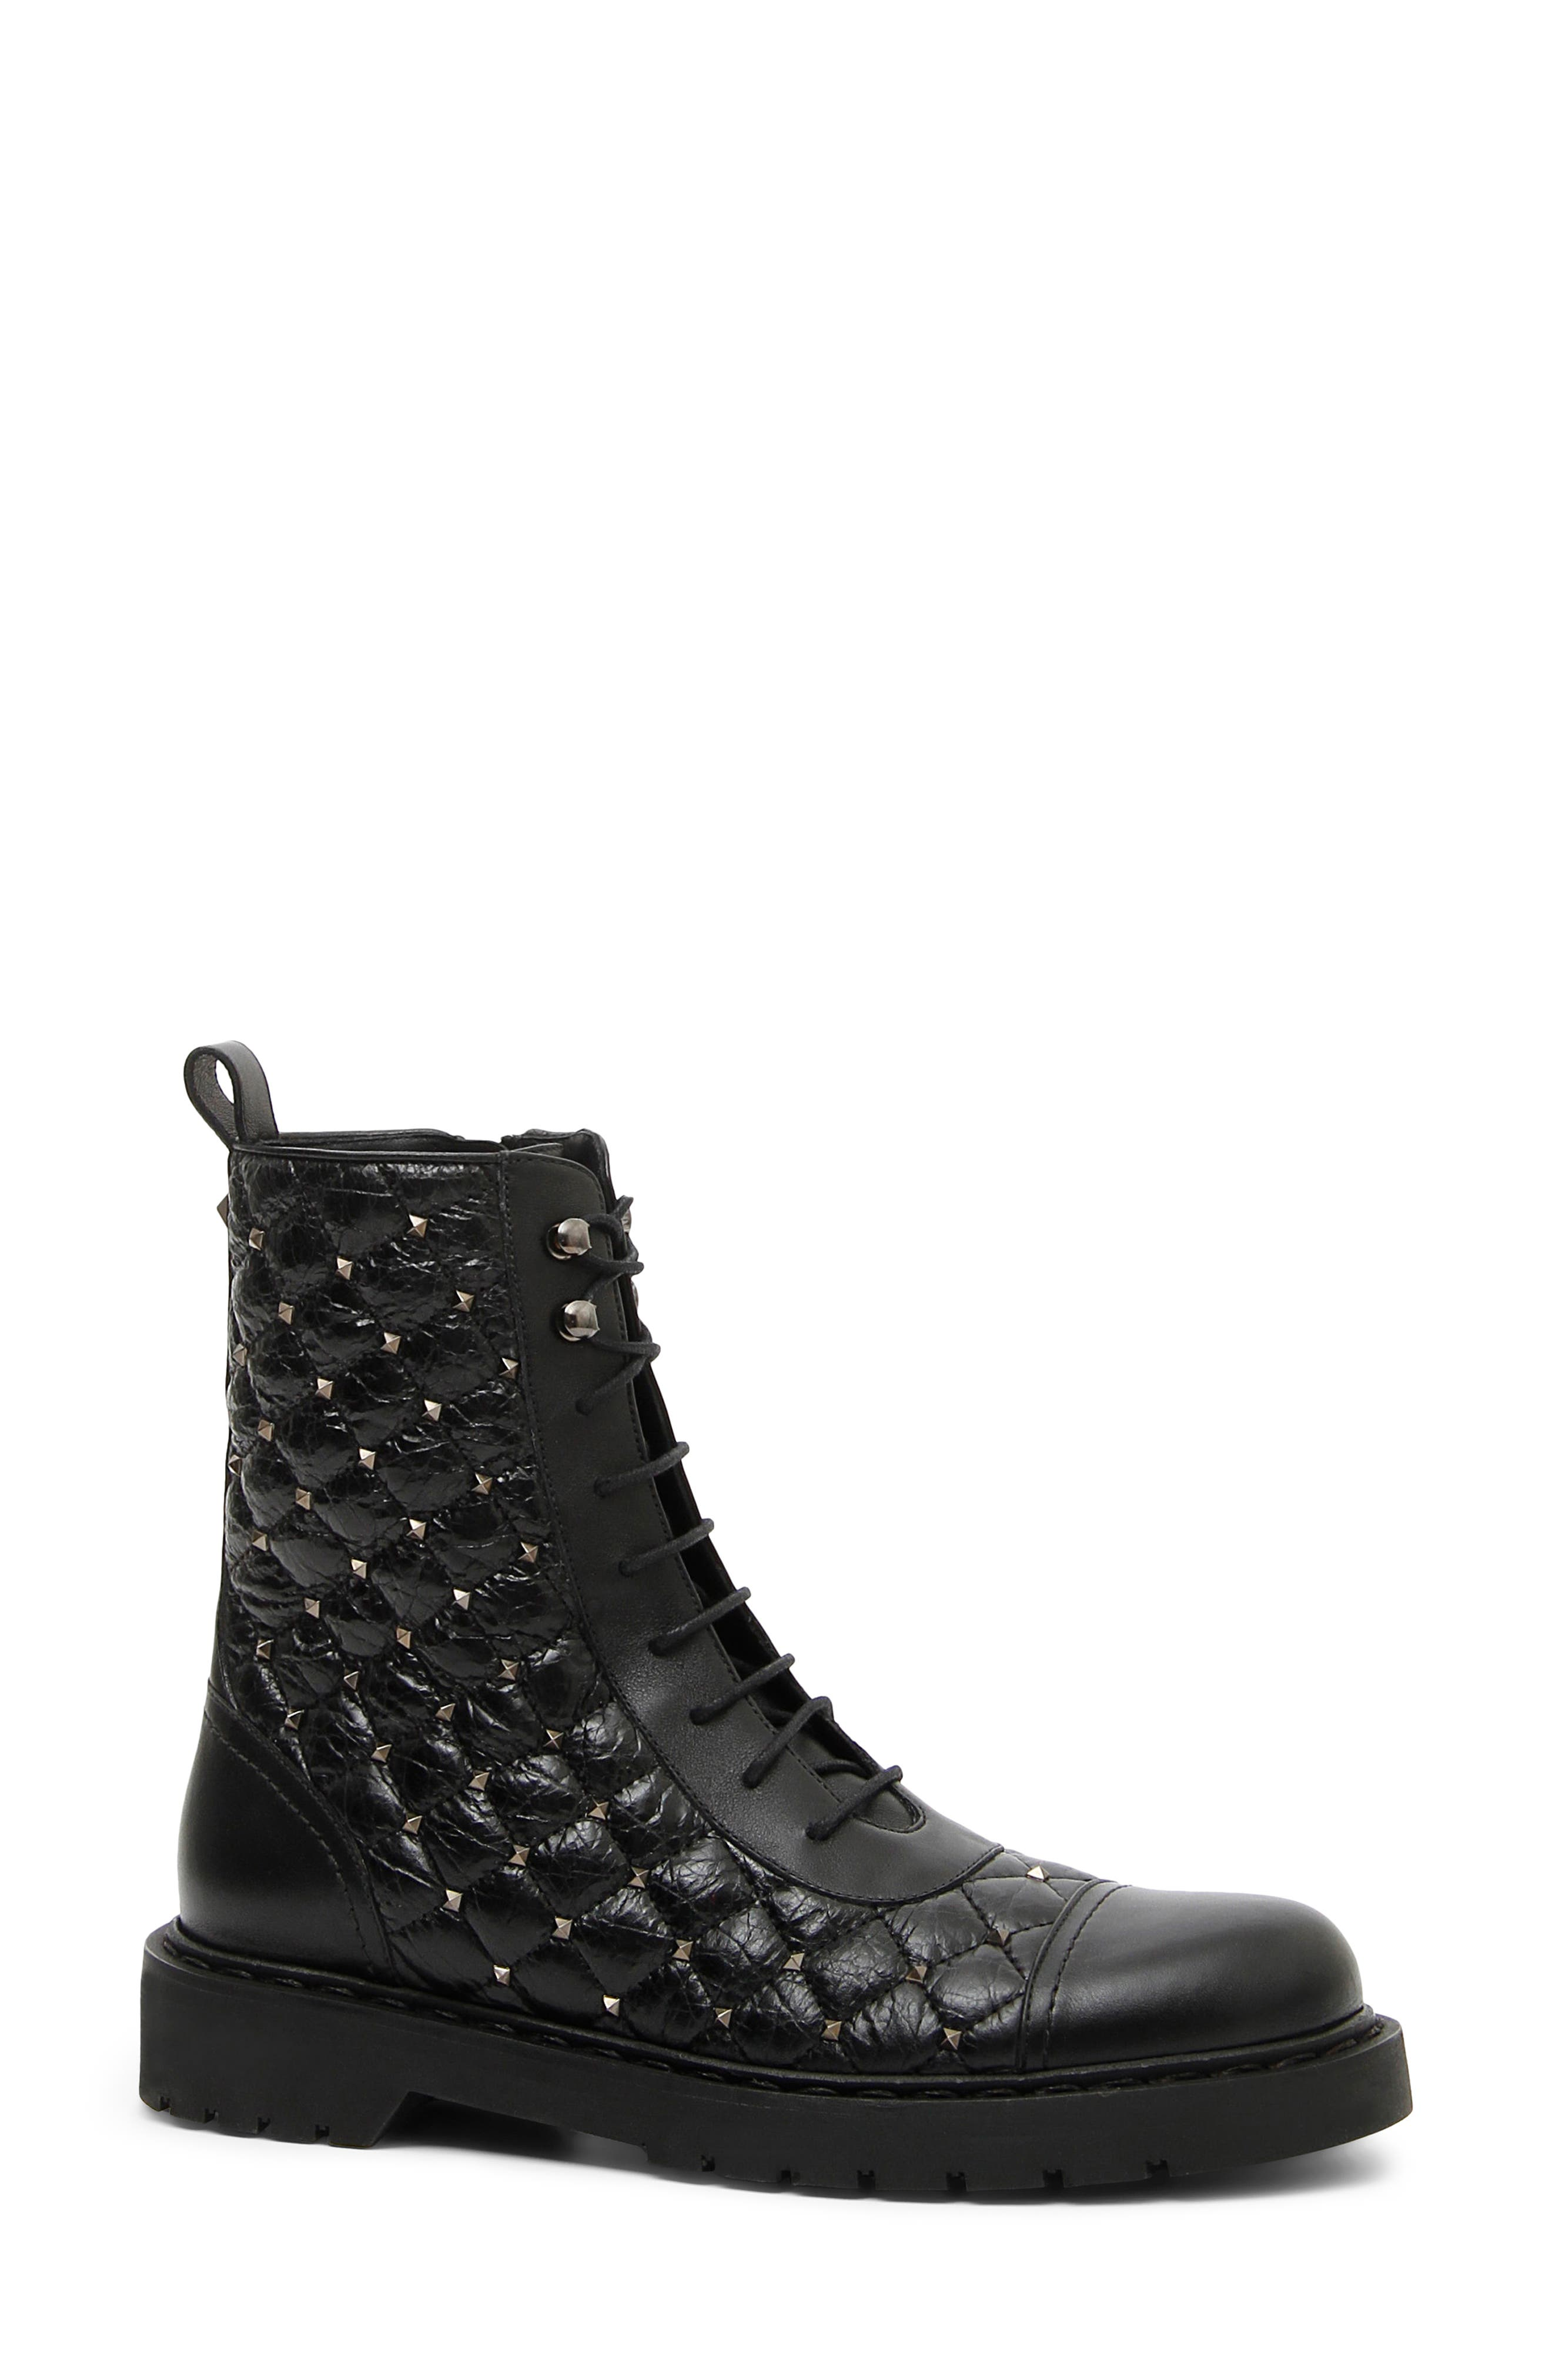 VALENTINO GARAVANI Rockstud Quilted Combat Boot, Main, color, BLACK